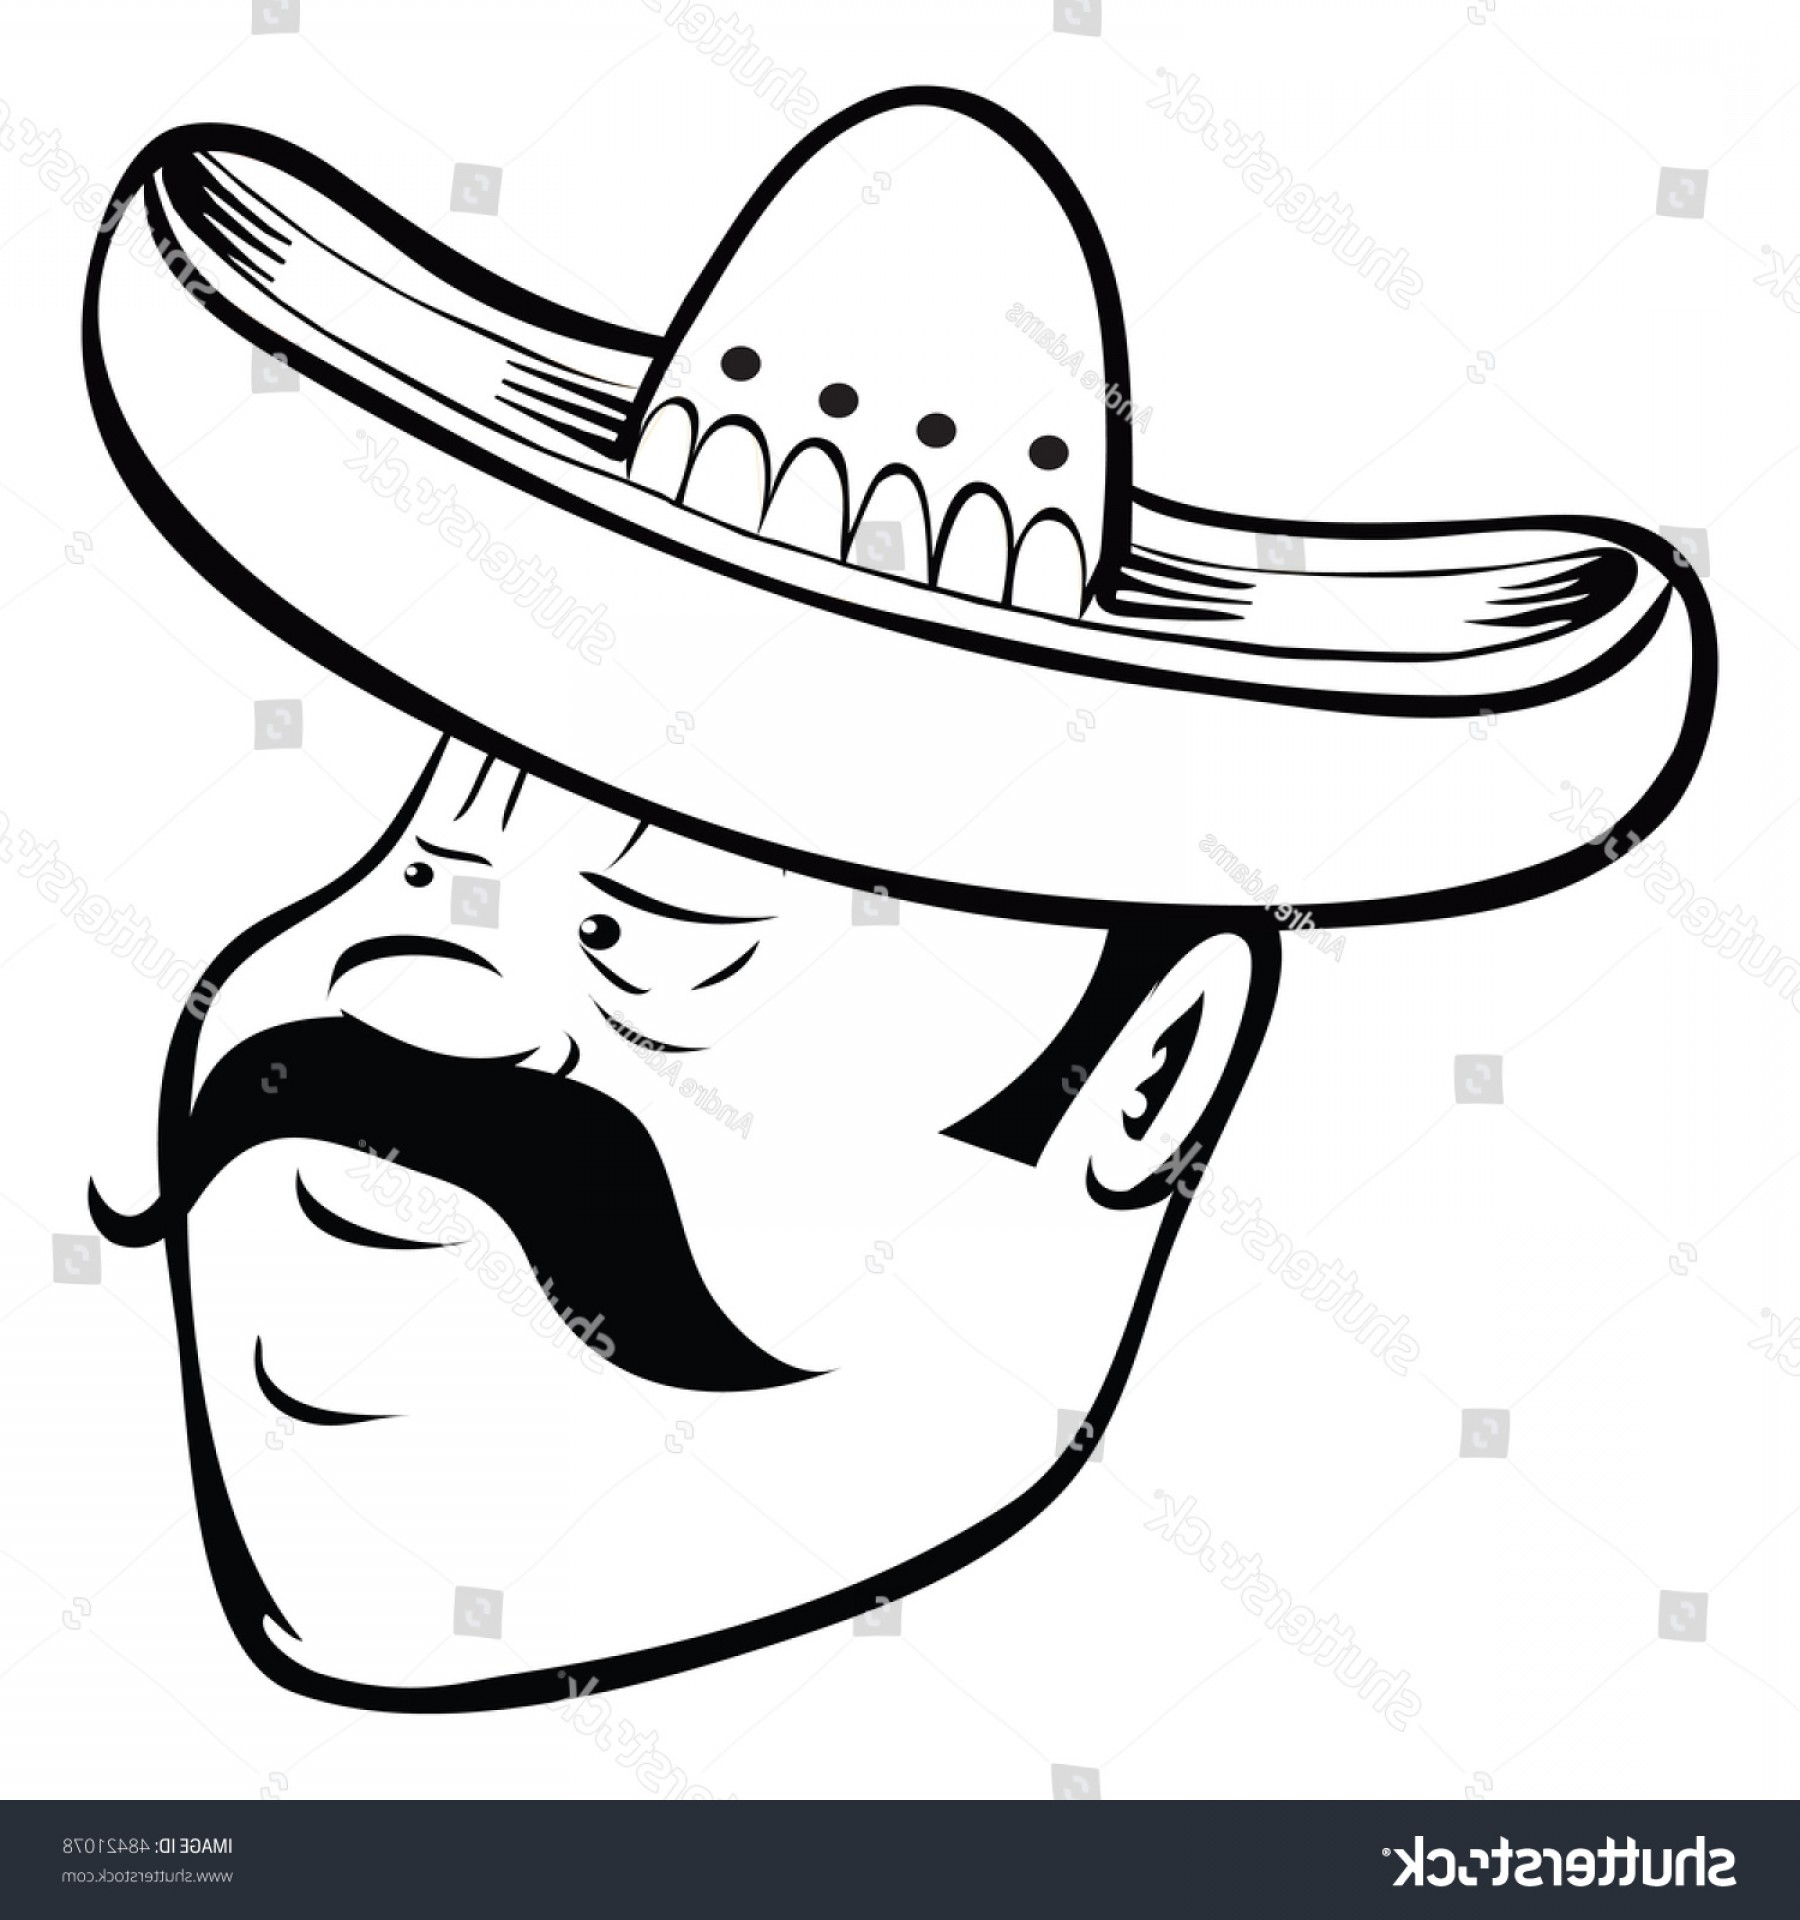 Sombrero Vector Outline: Cartoon Vector Outline Illustration Mexican Sombrero